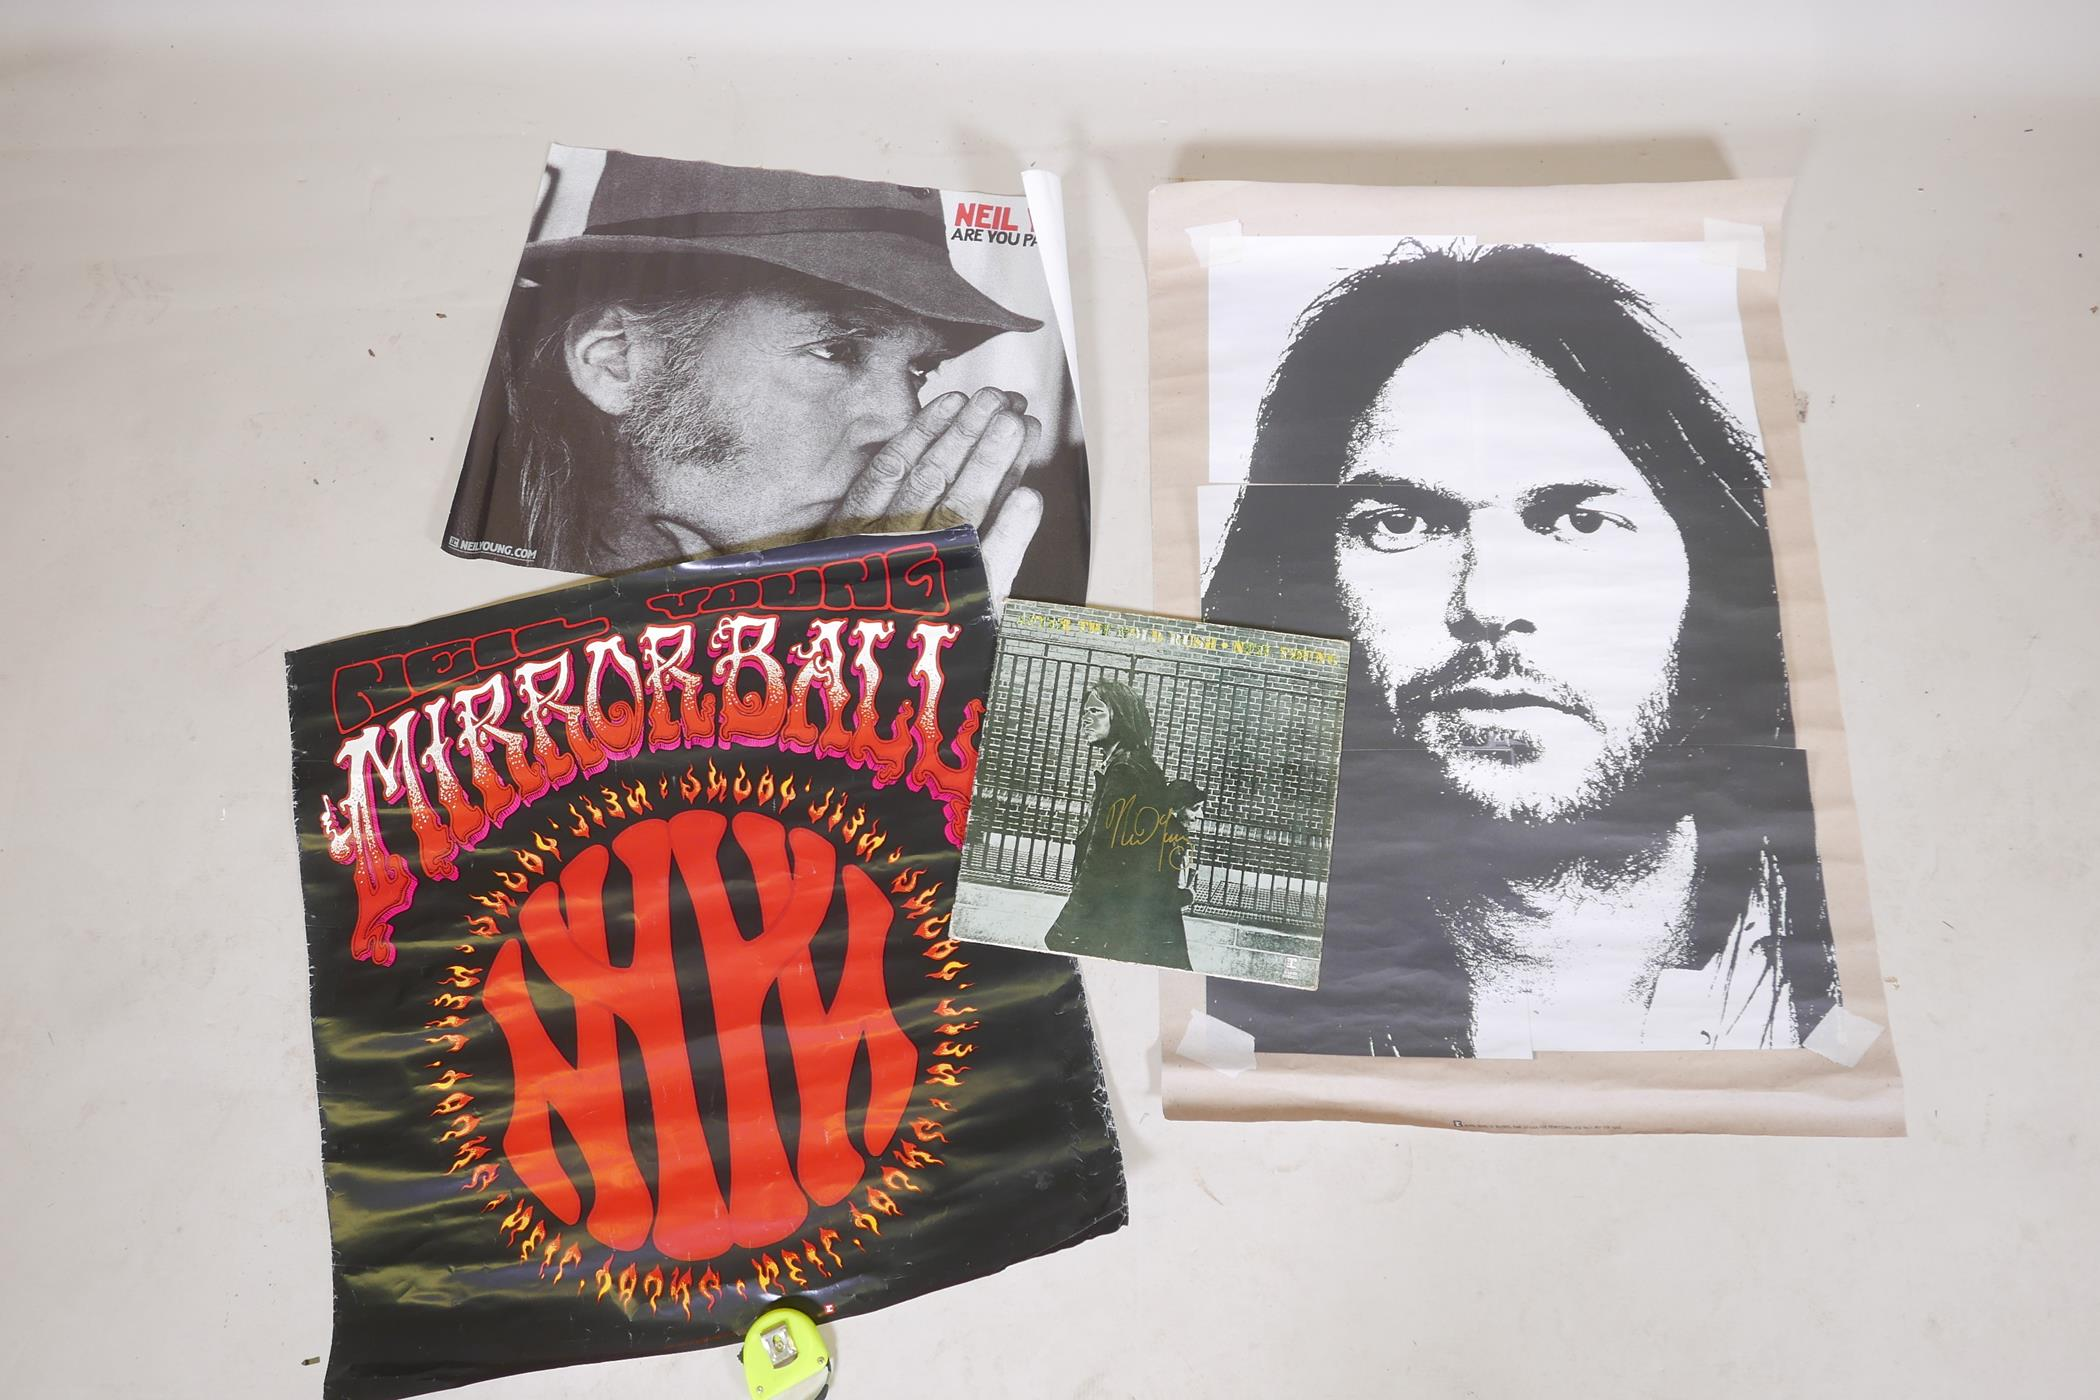 """'After the Gold Rush' 12"""" vinyl, the cover signed by Neil Young, with three Neil Young posters"""